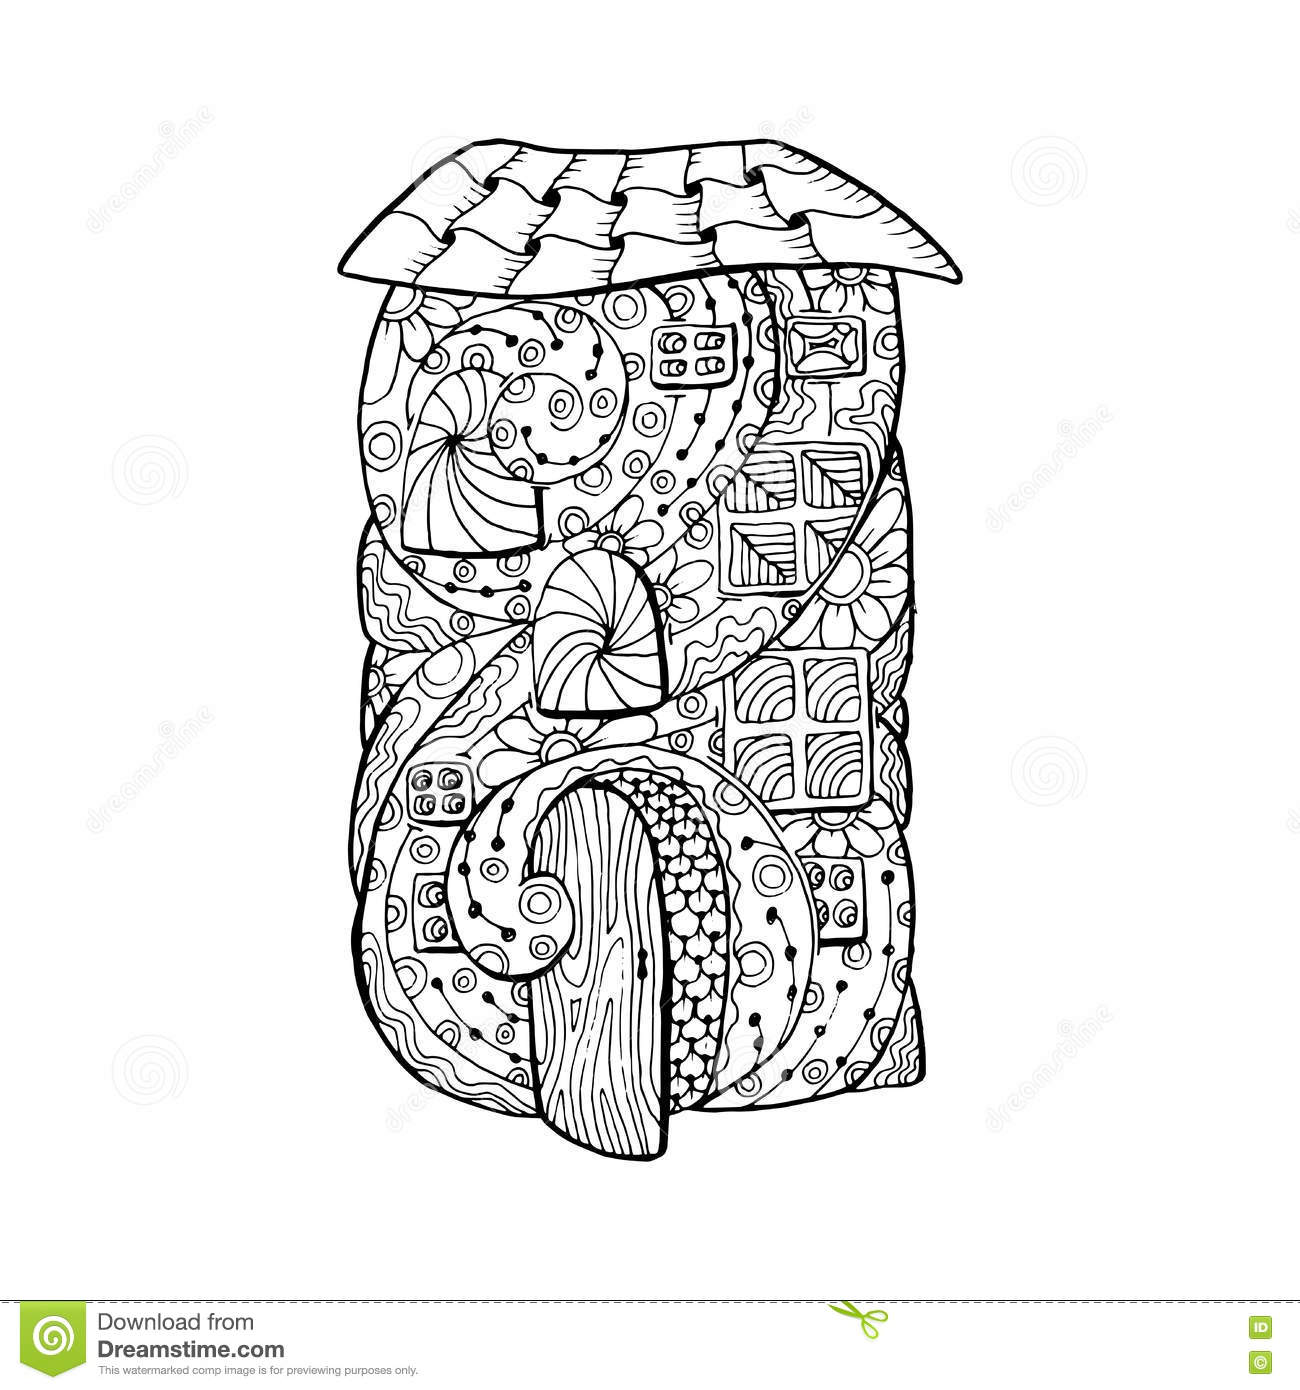 adult coloring book page mono color black ink illustration vector art fairy house with open door